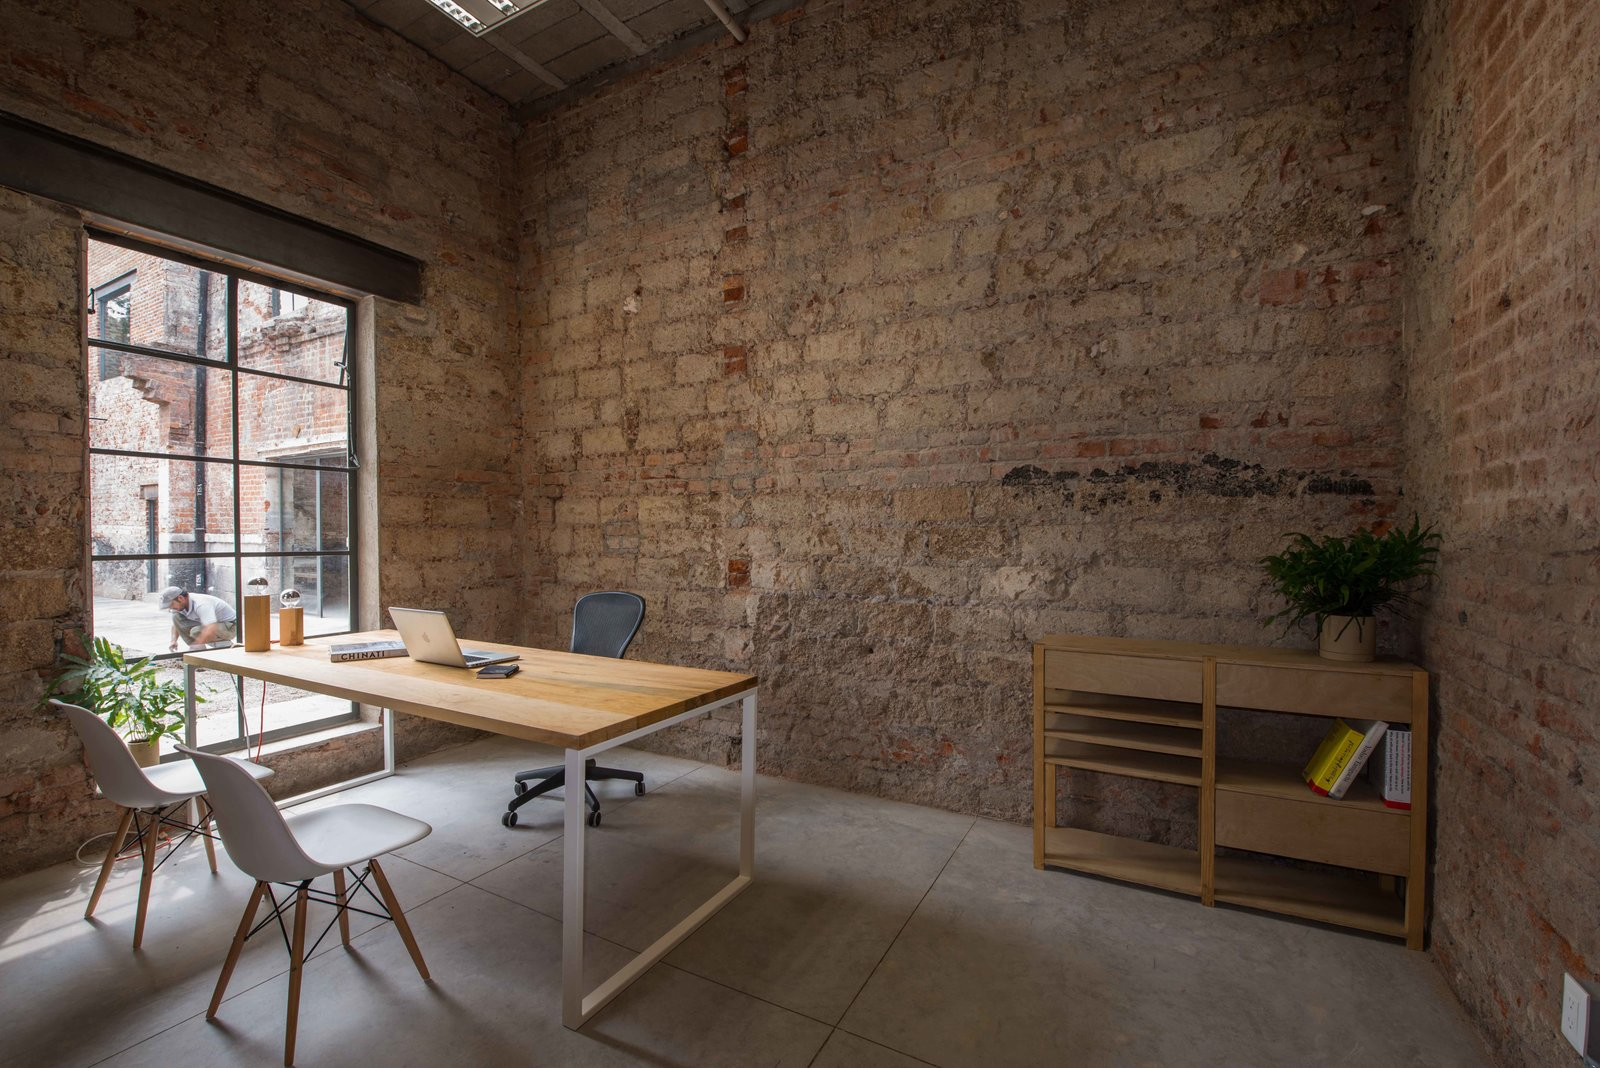 The firm added some windows to direct attention to the interior garden area. Eames shell chairs and an Aeron chair from Herman Miller surround a custom desk.  exposed brick by Kate Reggev from Modern Office Space Carved Out of a Crumbling Brick Building